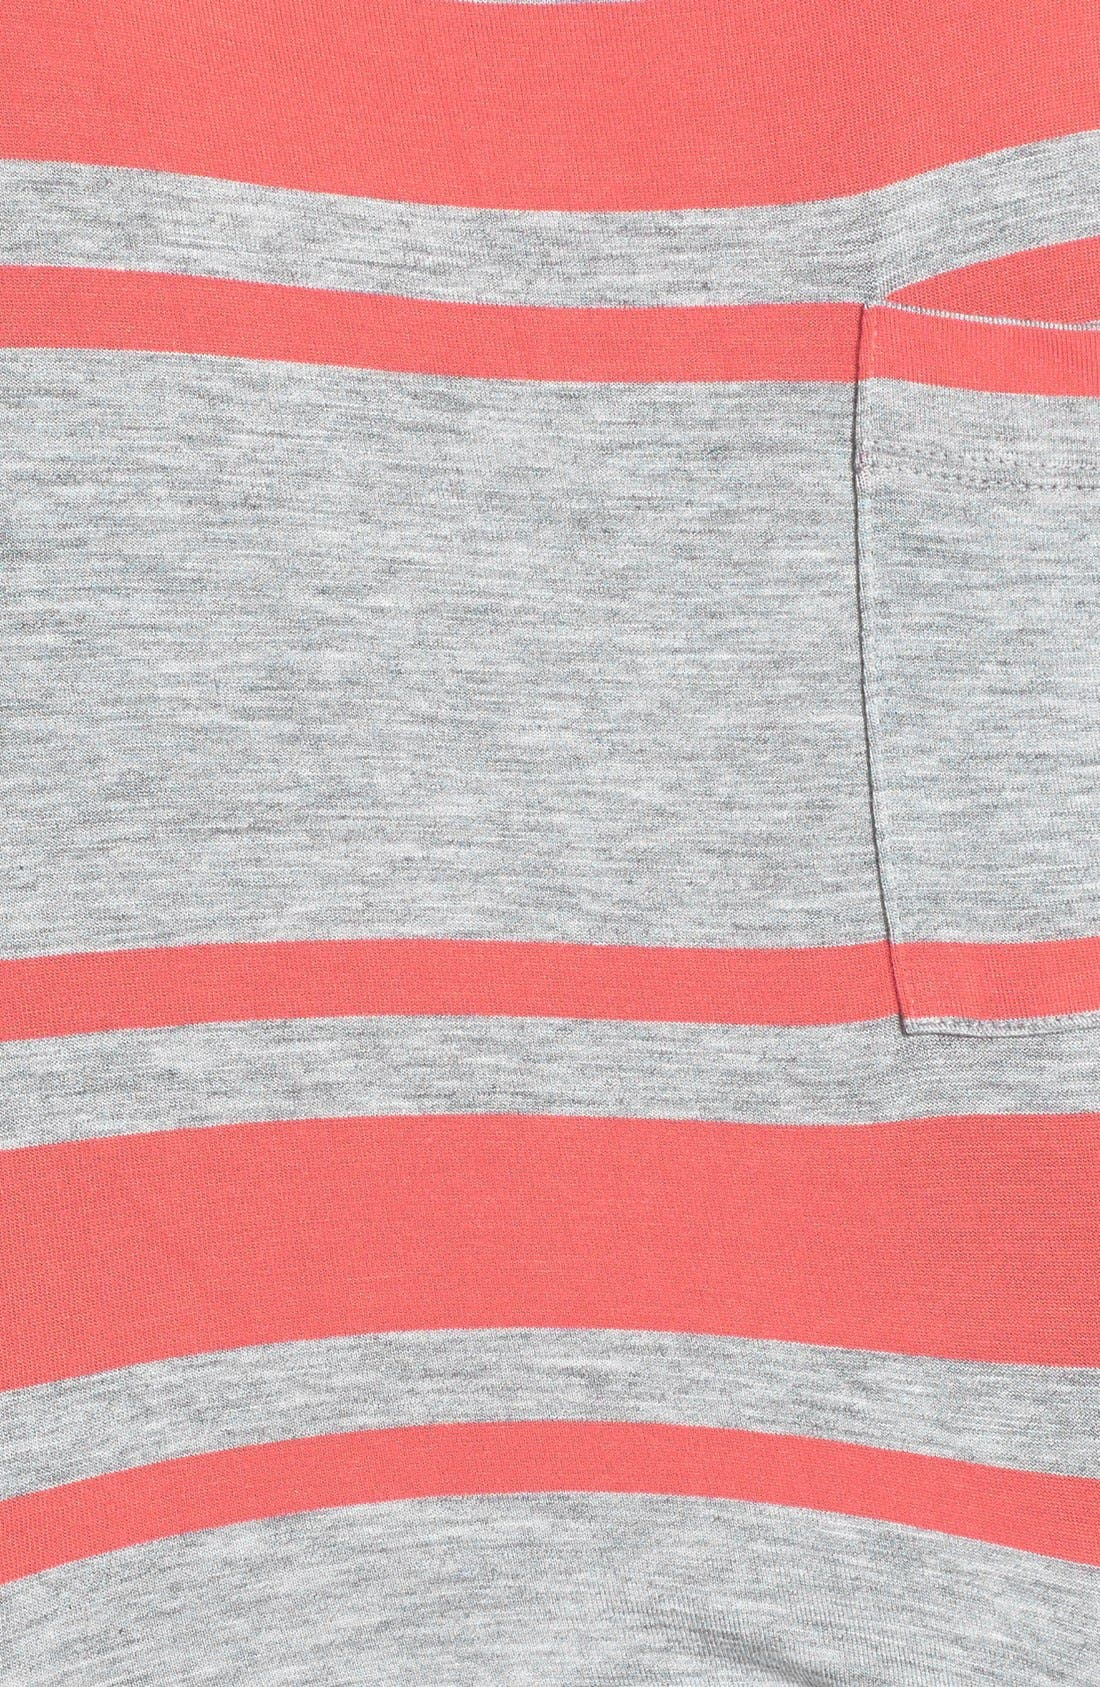 Drawstring Jersey Maxi Dress,                             Alternate thumbnail 3, color,                             Heather Grey/ Coral Stripe